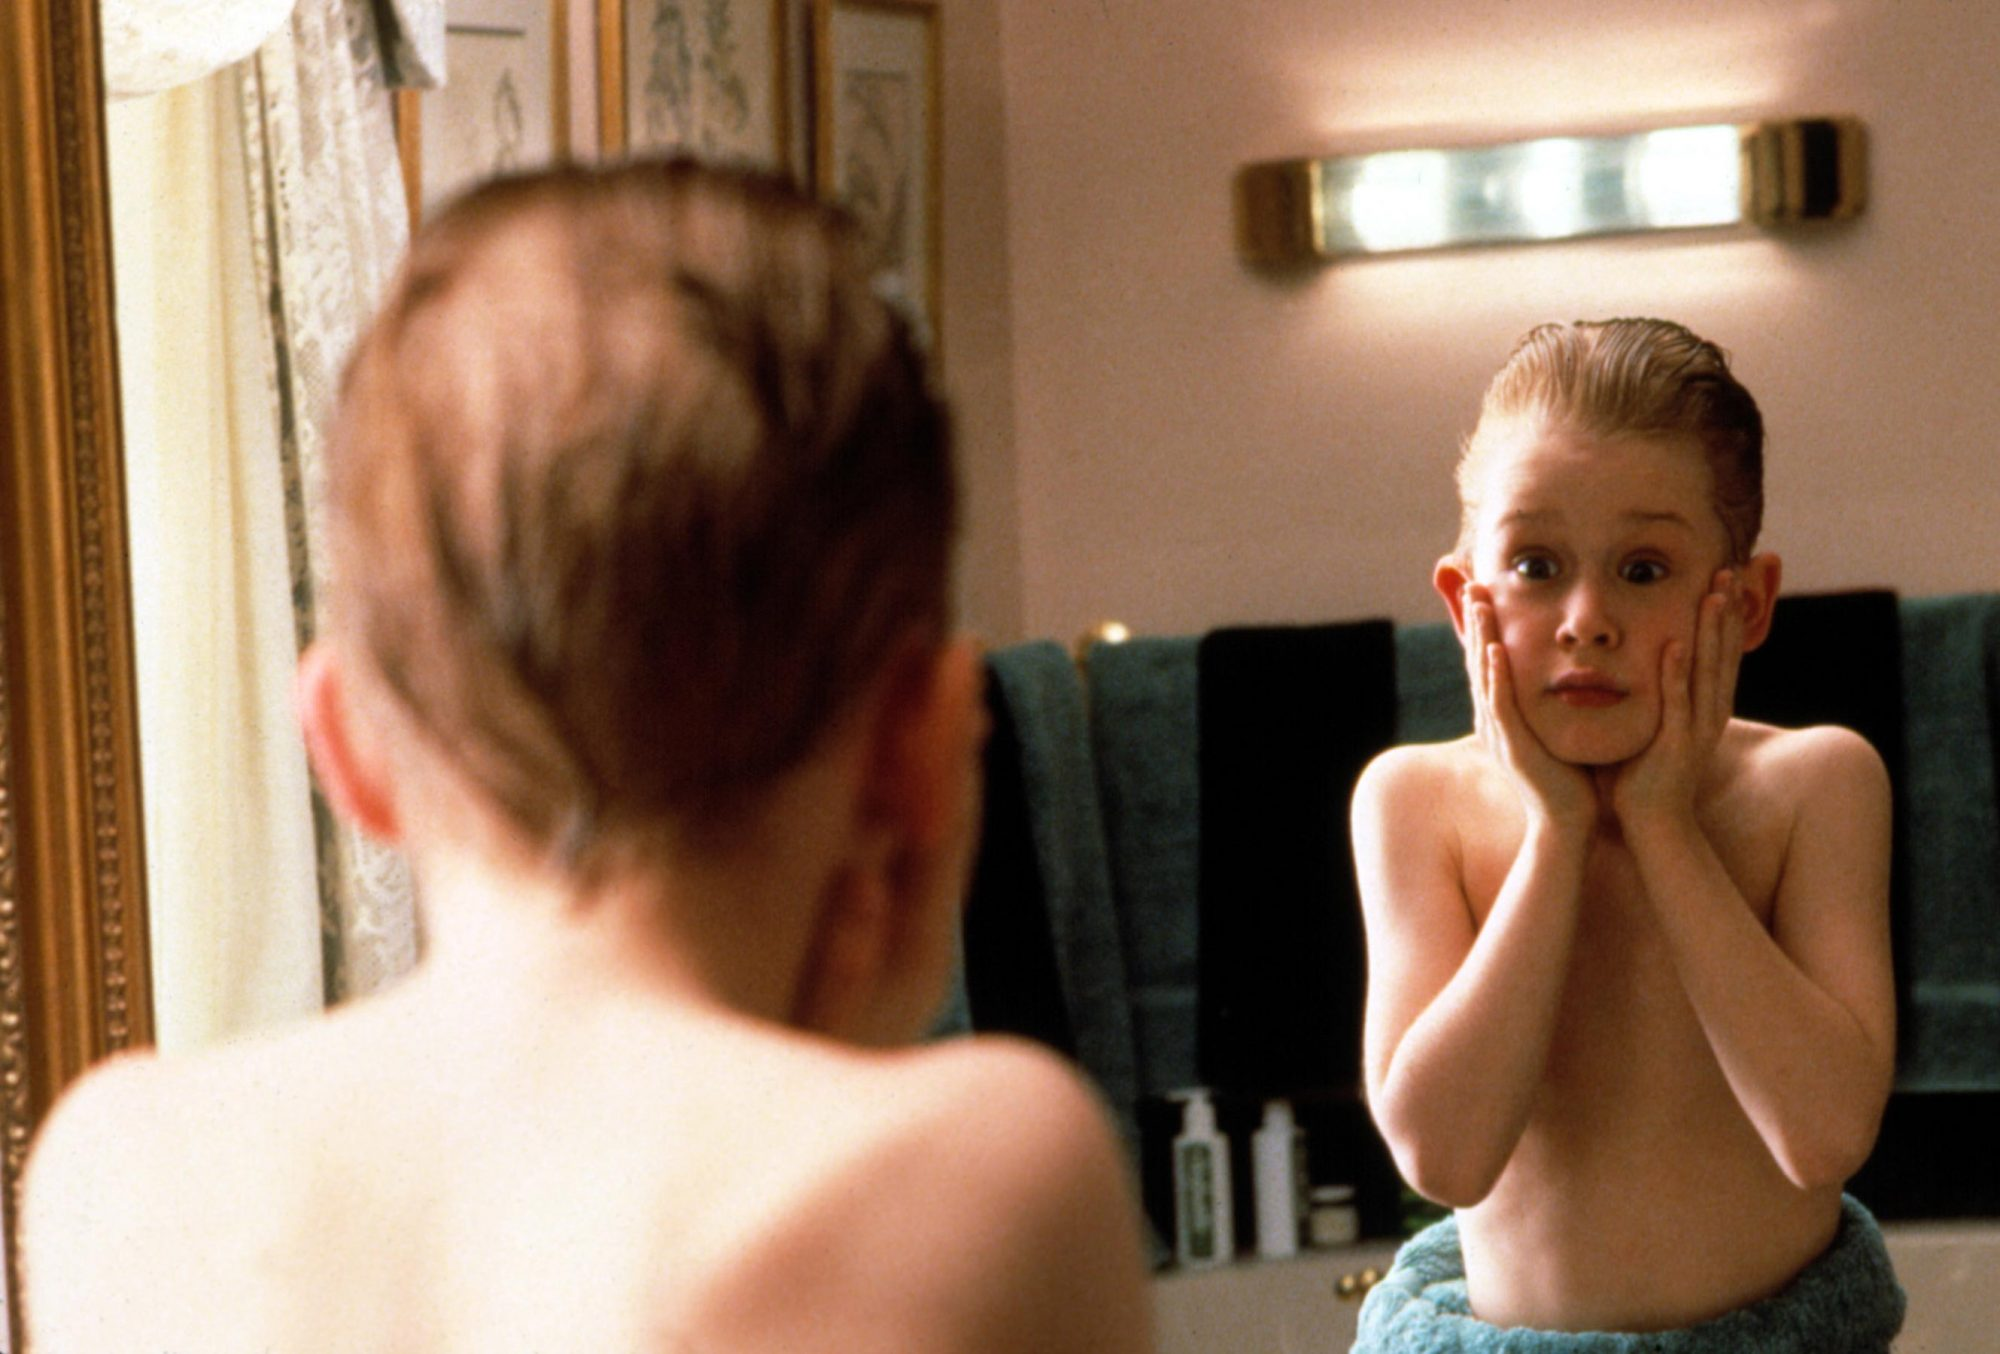 HOME ALONE, Macaulay Culkin, 1990. TM and Copyright (c) 20th    Century Fox Film Corp. All rights